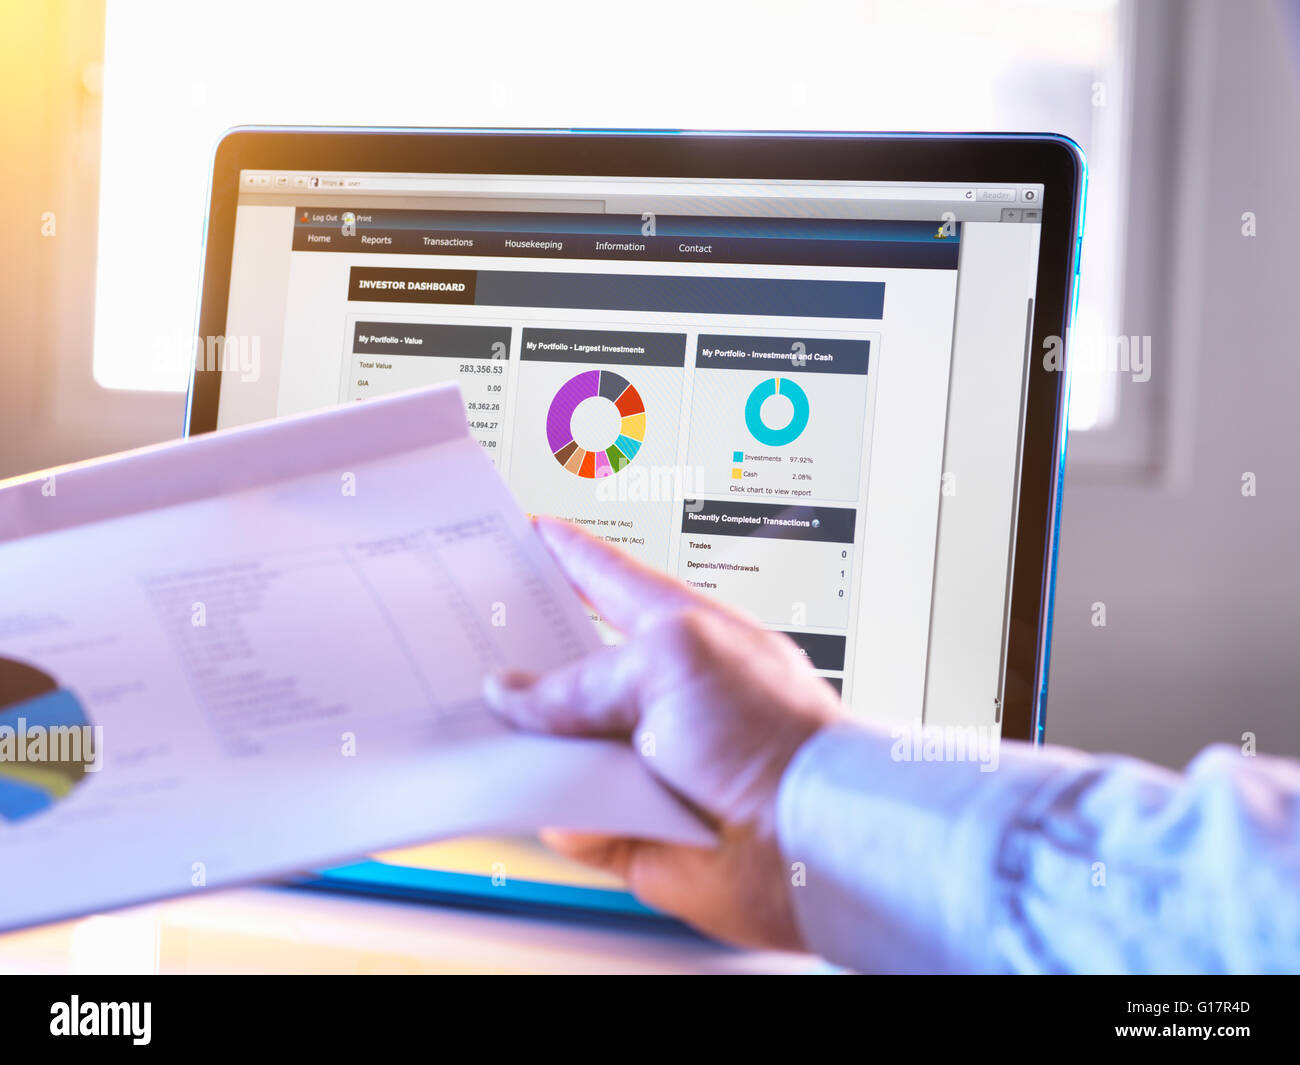 Man viewing online portfolio of investments for savings and pension - Stock Image